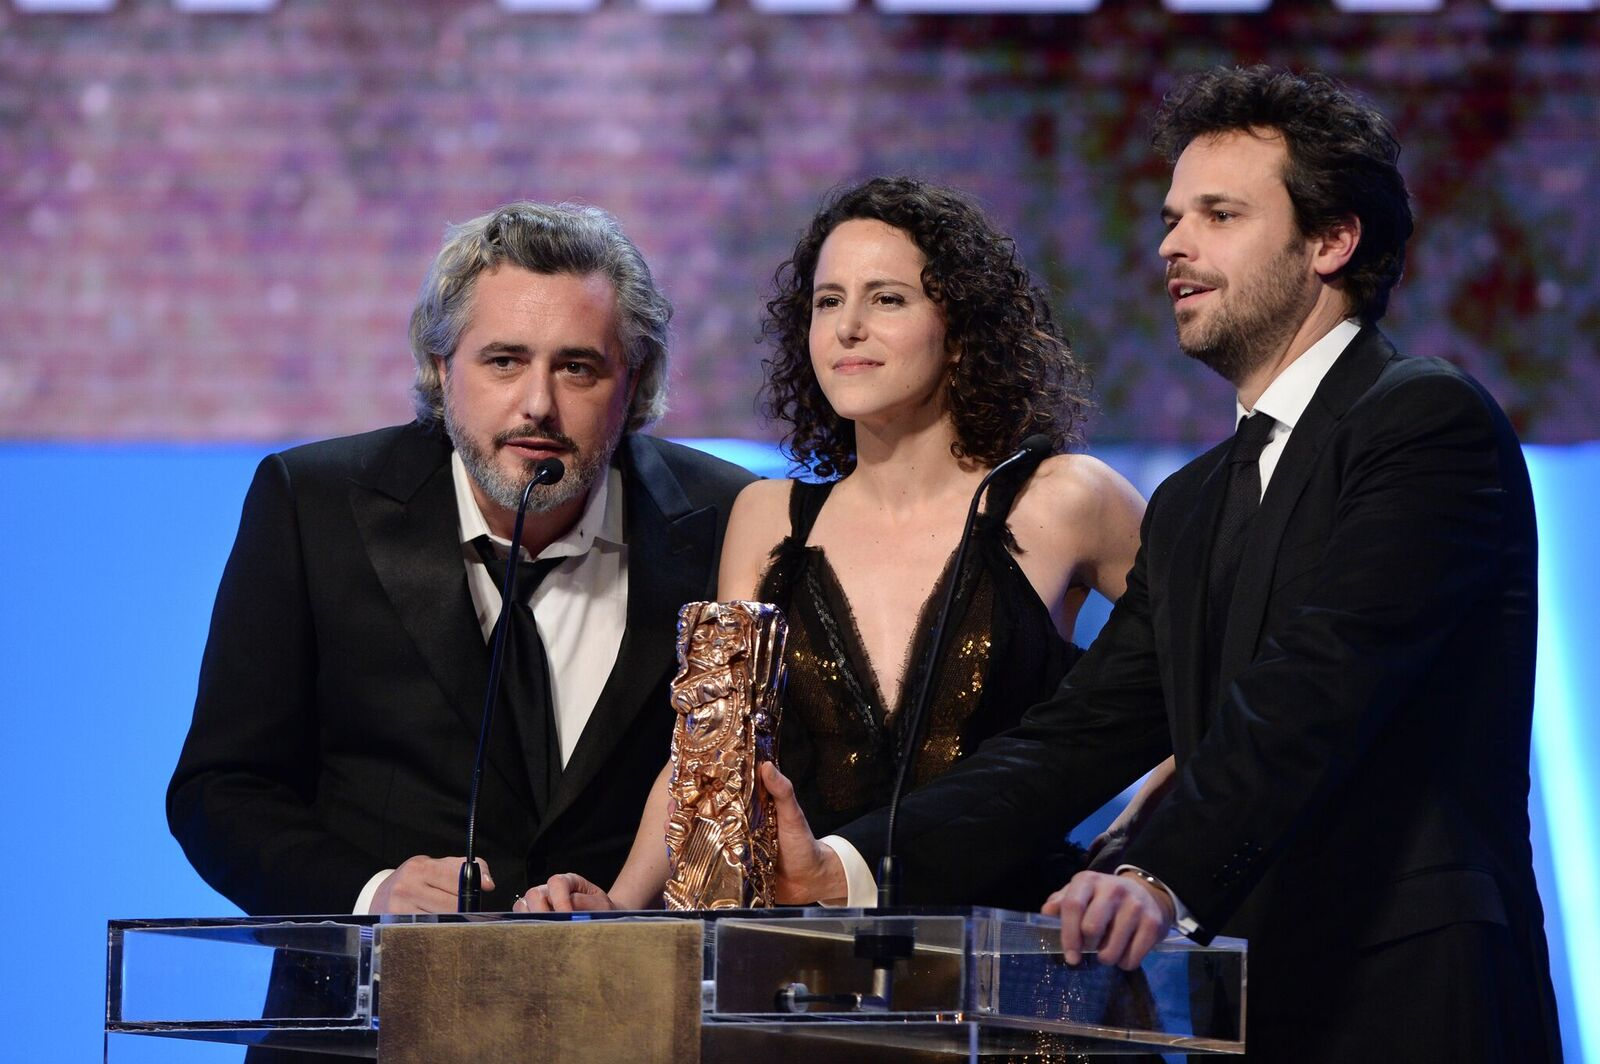 Nicolas Rey, Emma Luchini et Romain Rousseau au Théâtre du Chatelet le 20 février 2015 à Paris, France. | Photo : Getty Images